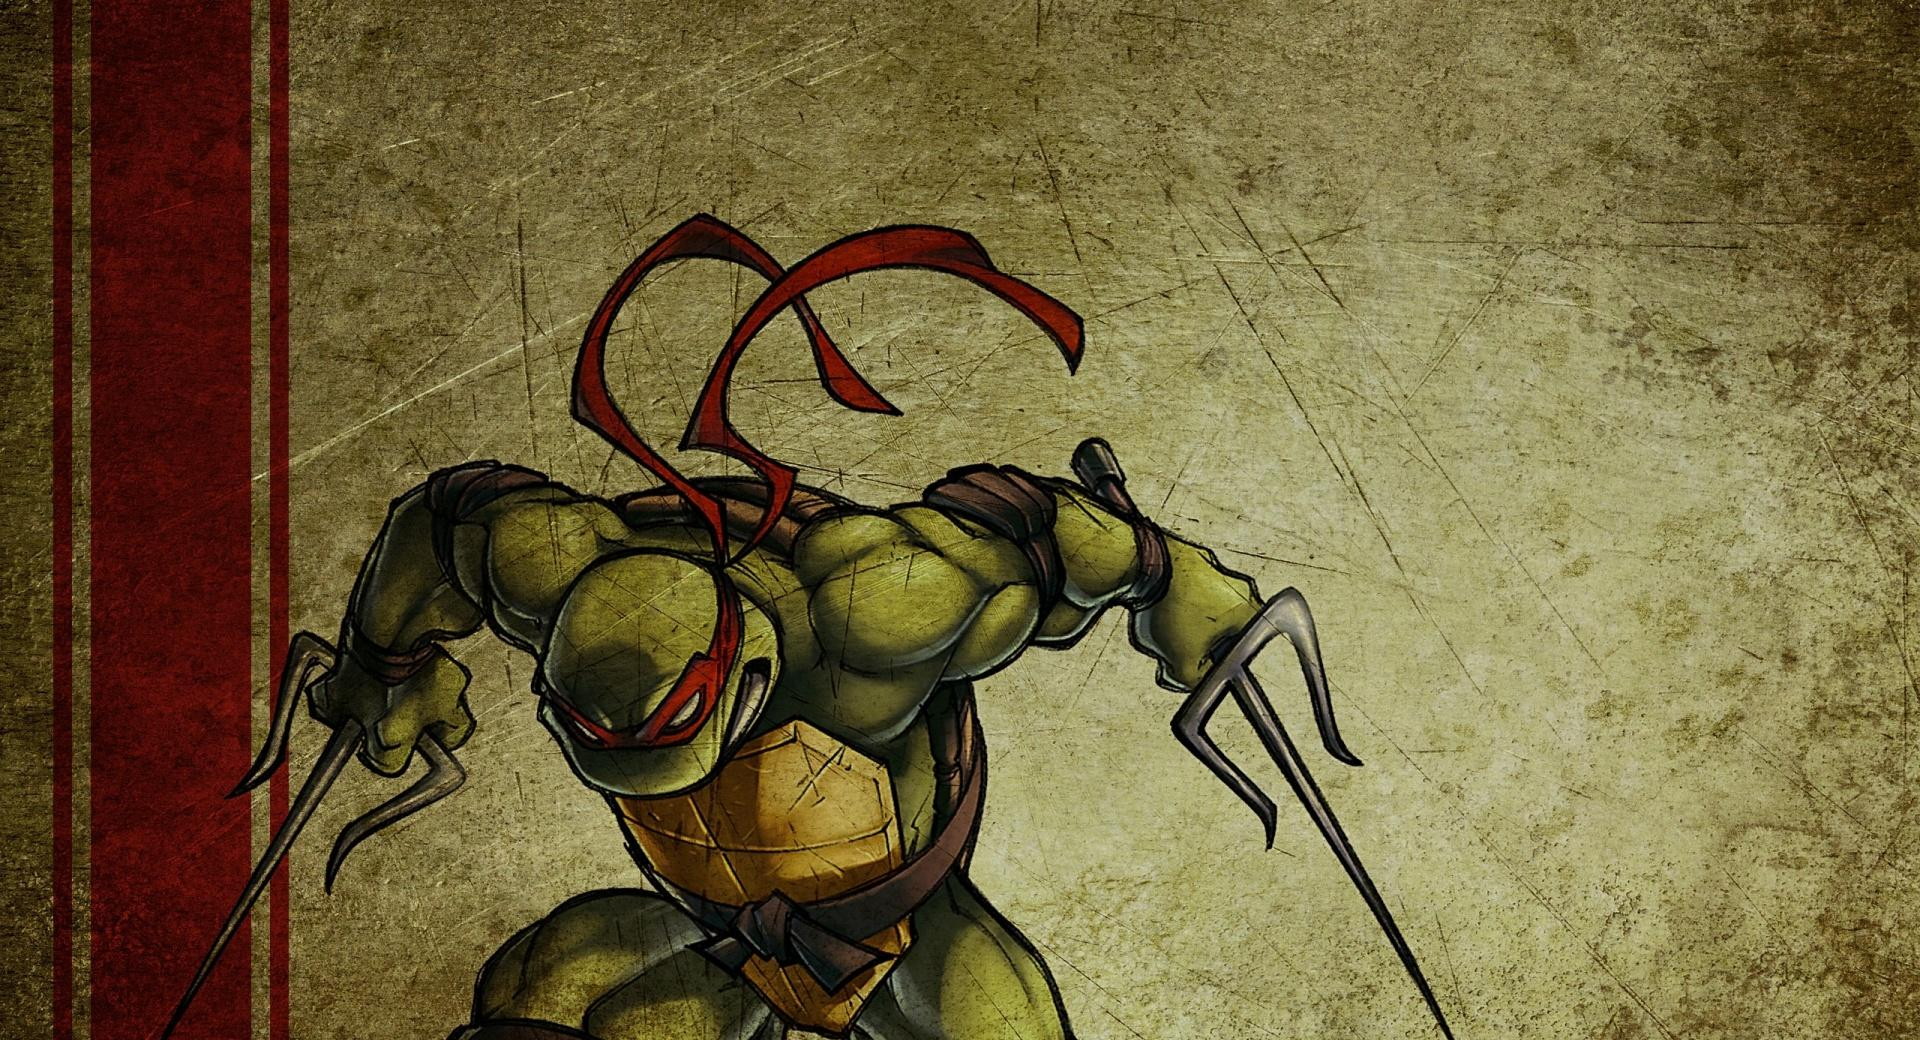 Raphael Teenage Mutant Ninja Turtles at 640 x 960 iPhone 4 size wallpapers HD quality